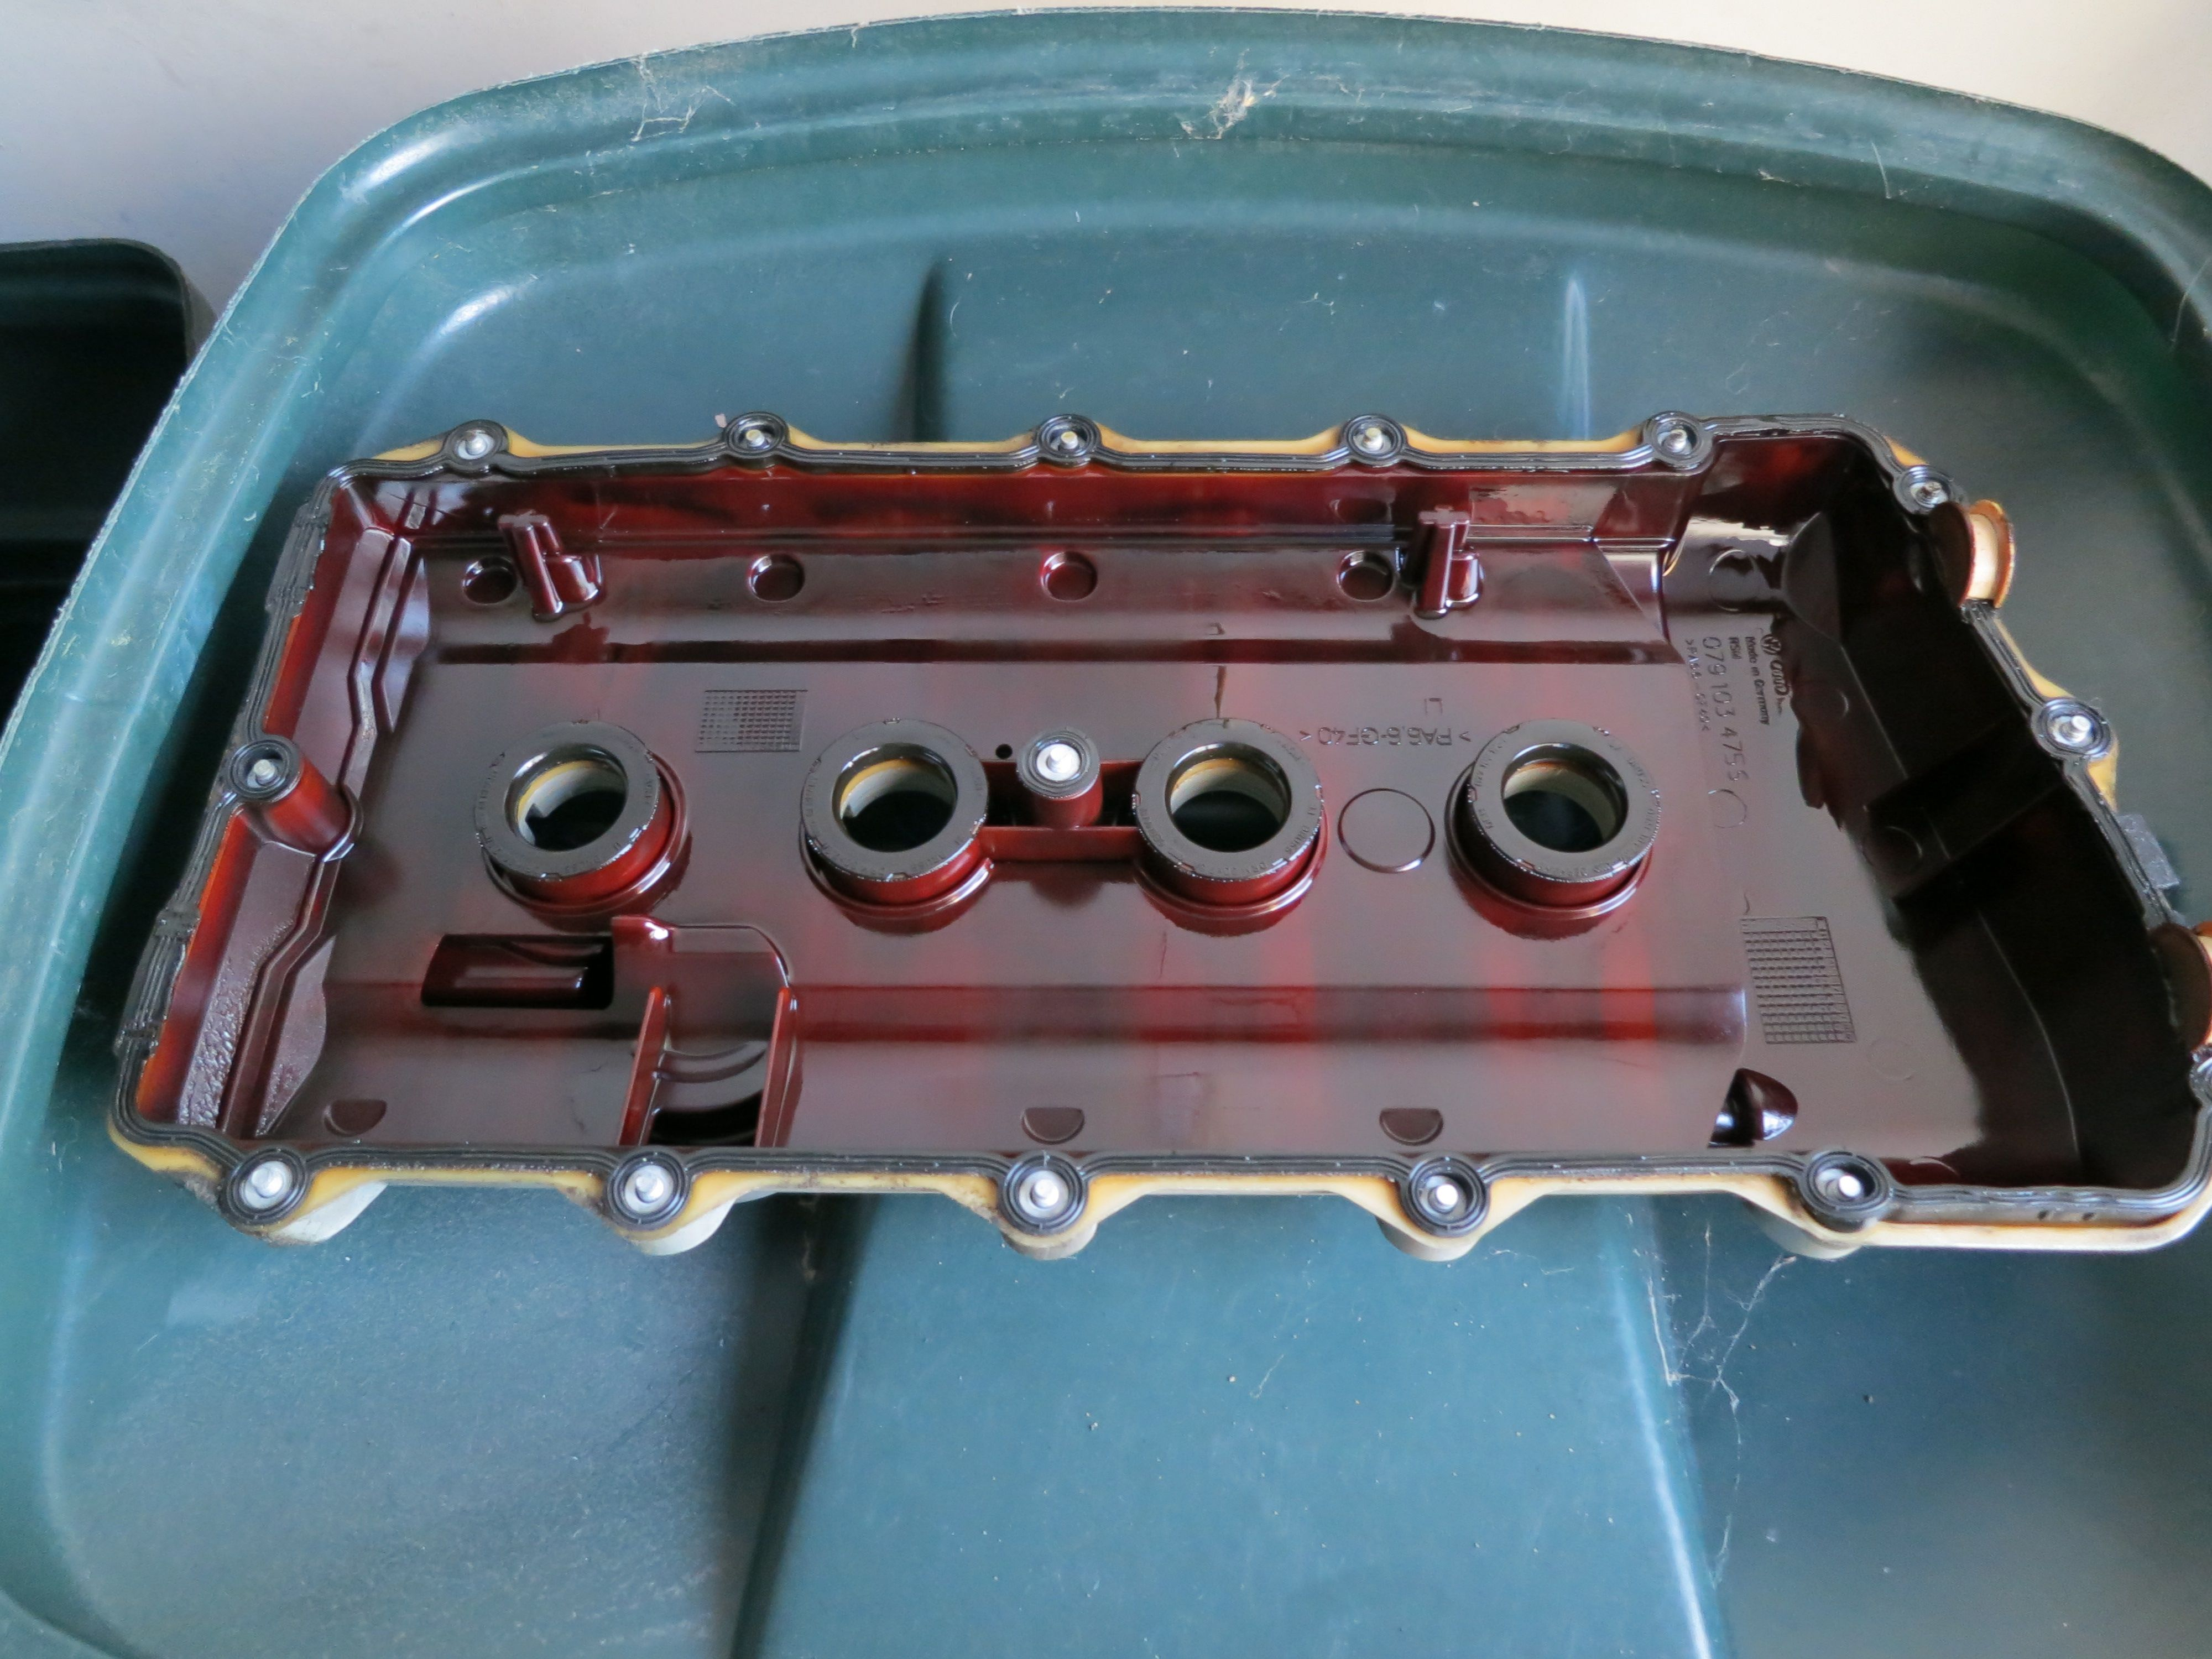 B6 s4 valve cover breather seals audiworld forums here is what one of the valve covers looked like drivers side picture taken before replacing the rubber bits sciox Choice Image